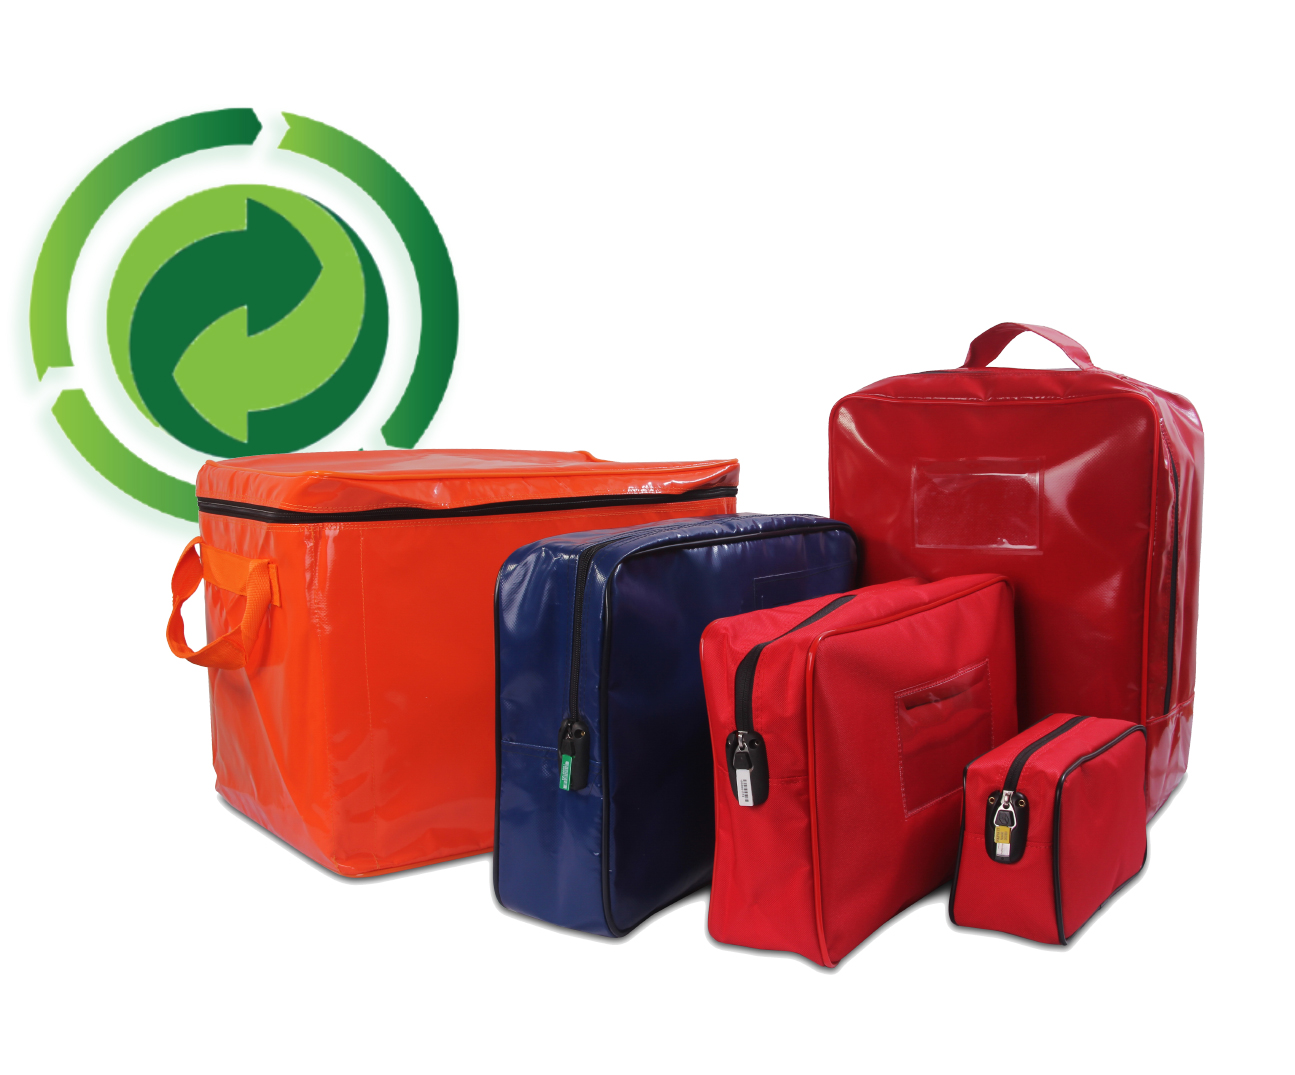 Bags con logo reciclable